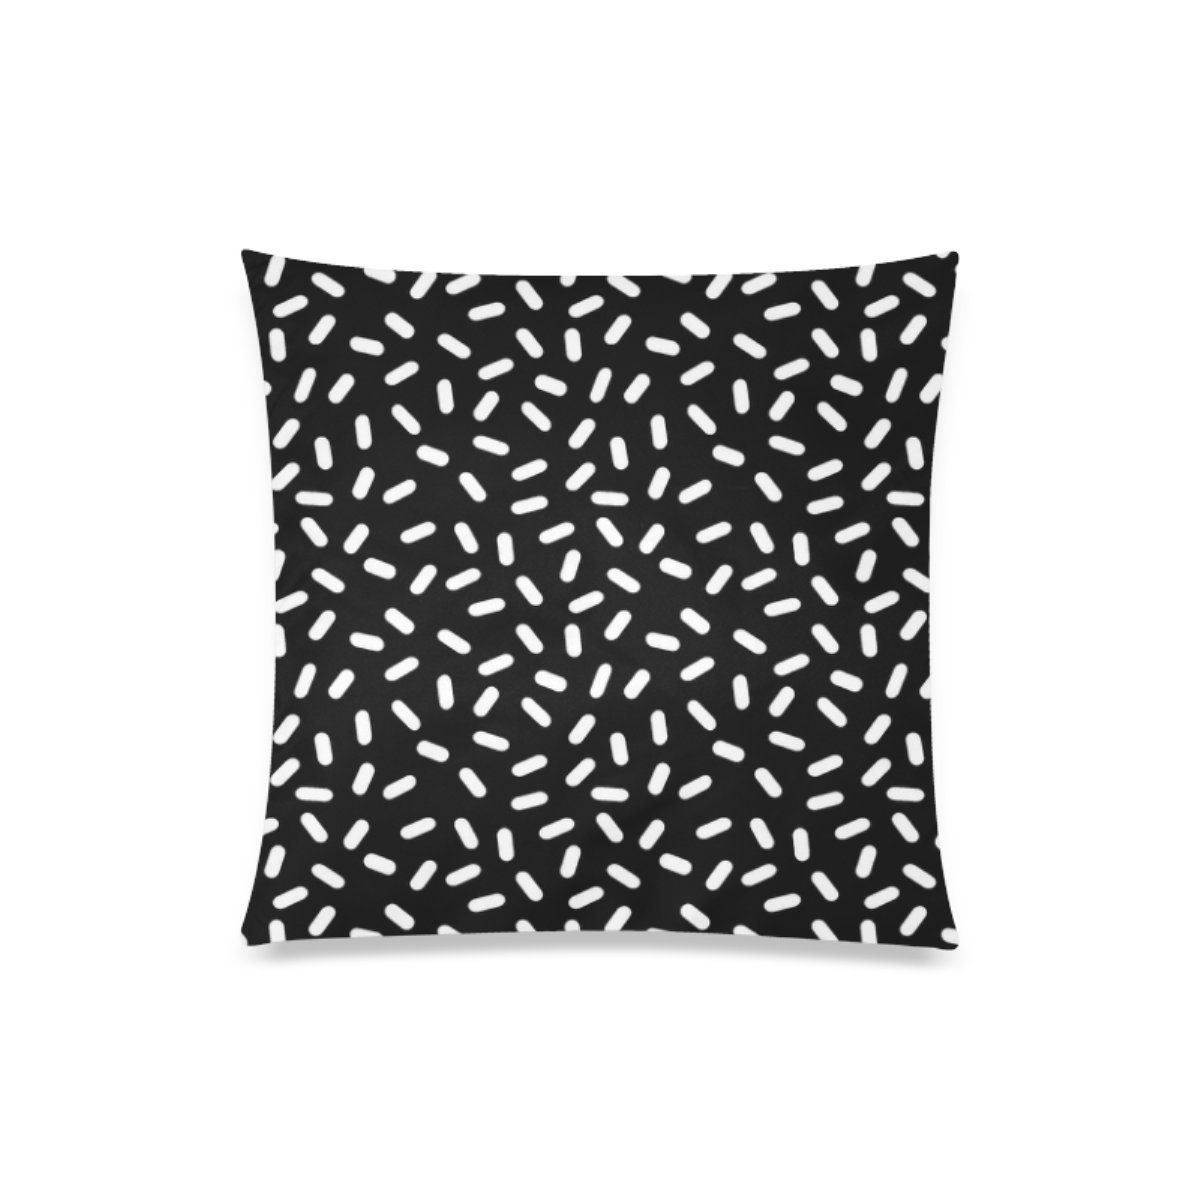 Custom Bingo Black And White Cushion Cases Zippered Throw Pillow Covers 20 by 20 Inches